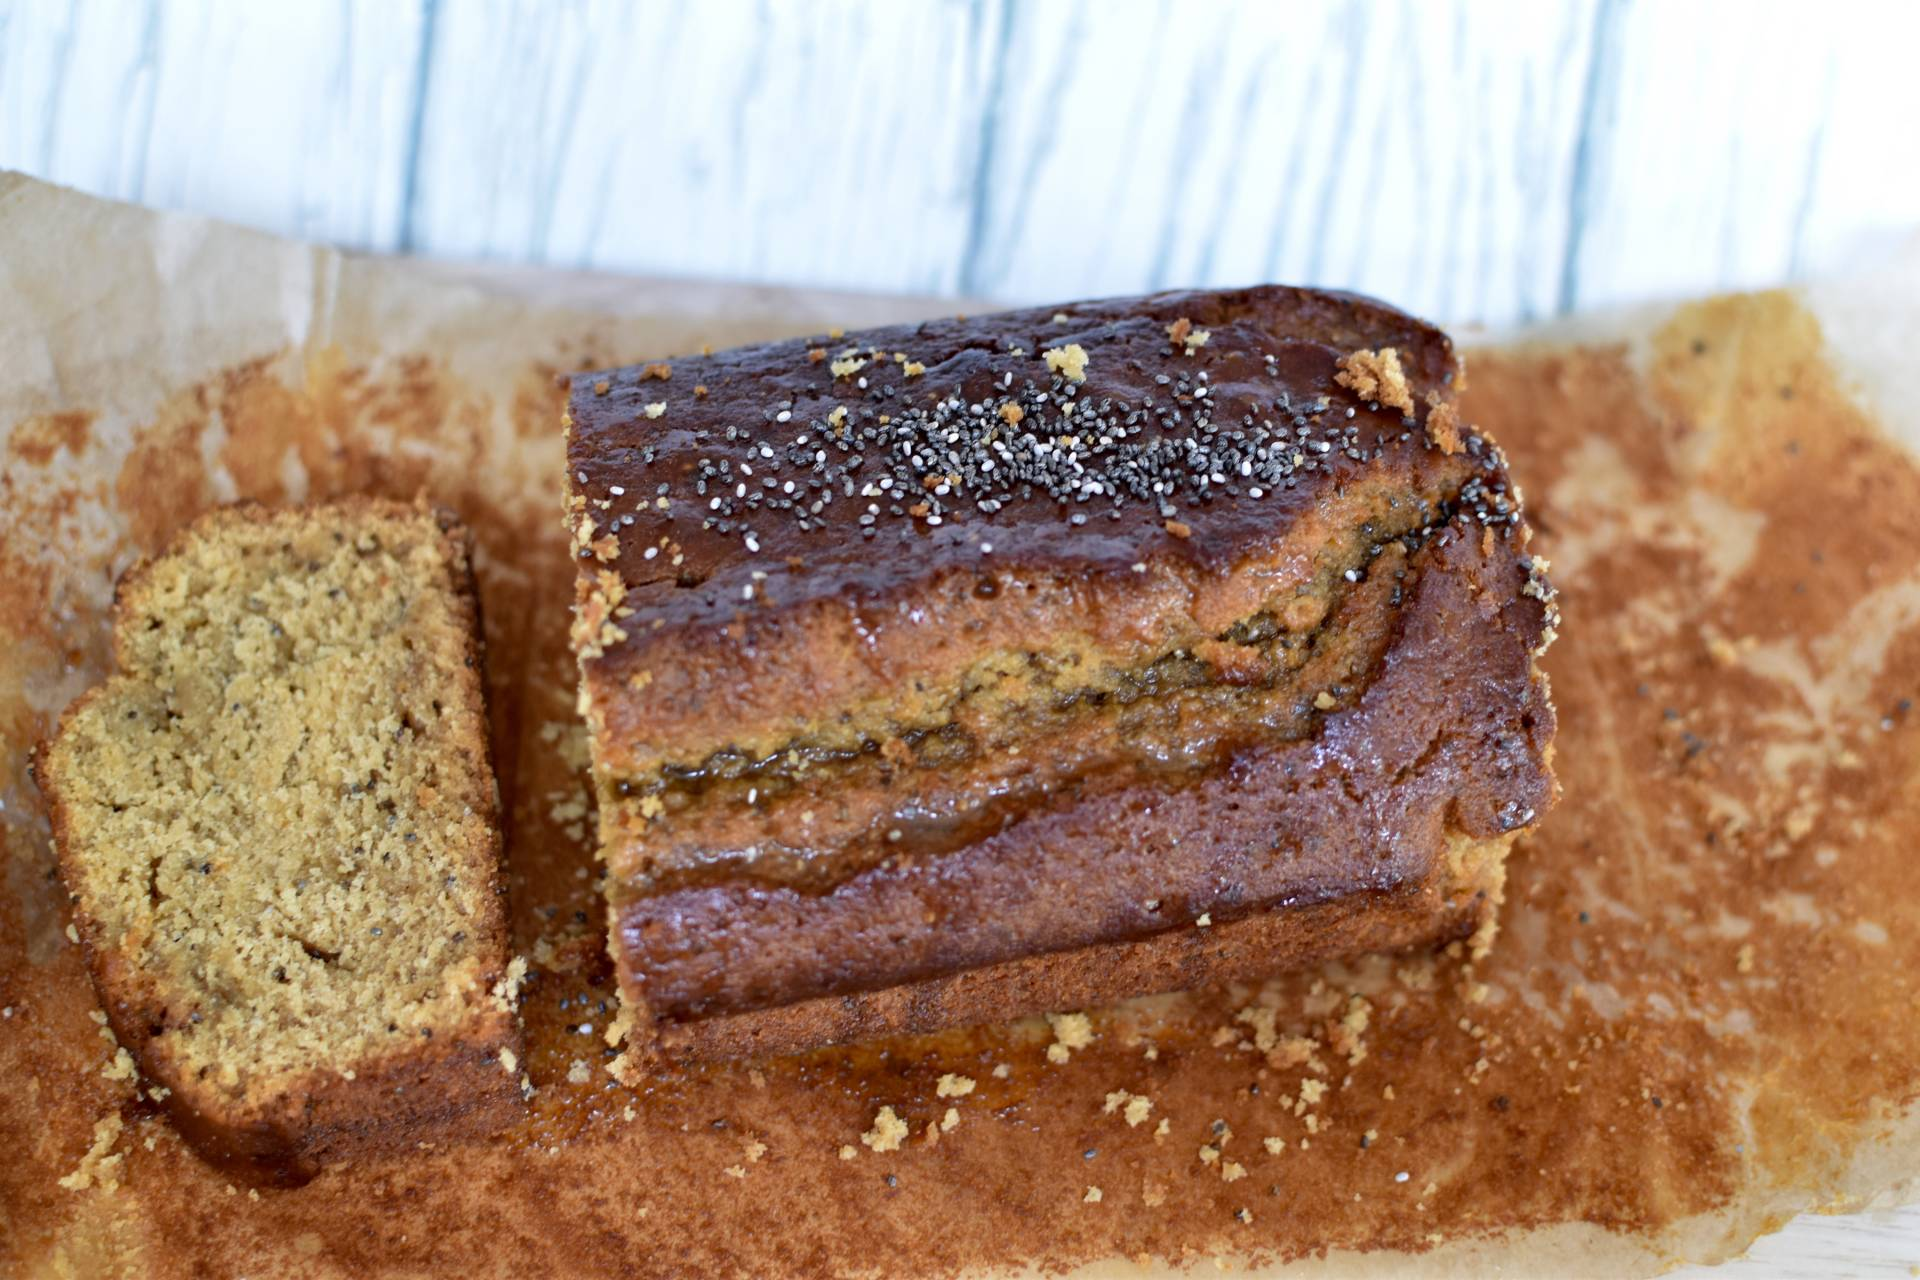 this honey and chia seed loaf cake has got to be one of the healthiest cakes you can make, this recipe uses the super food Manuka Honey as a glaze giving it extra super powers!